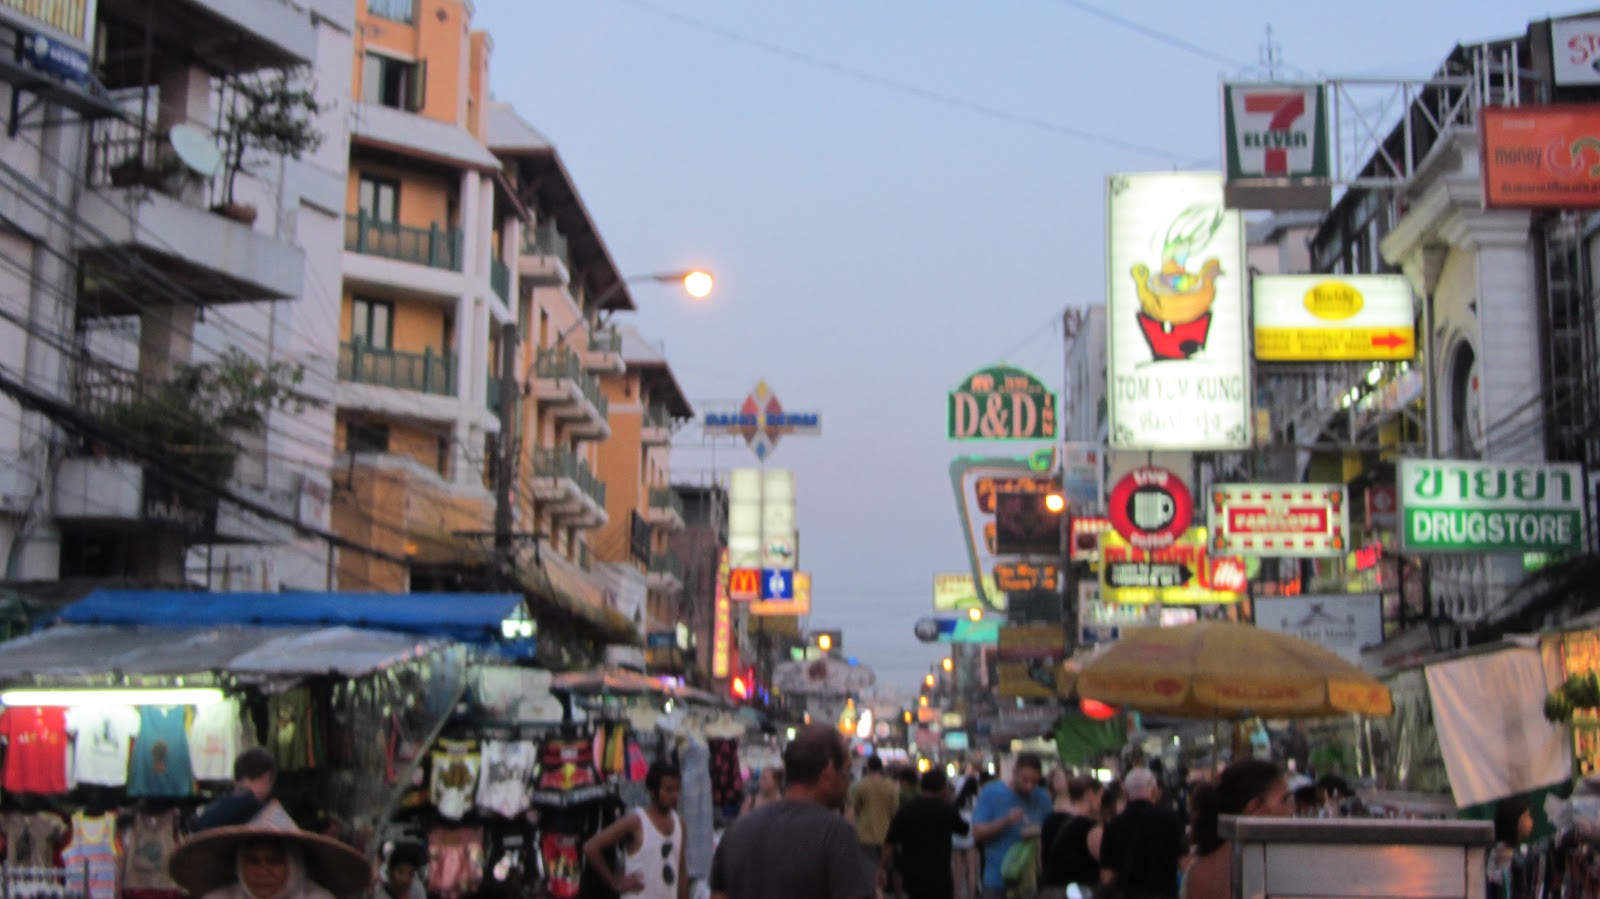 run, gloria, run!: Khao San Road